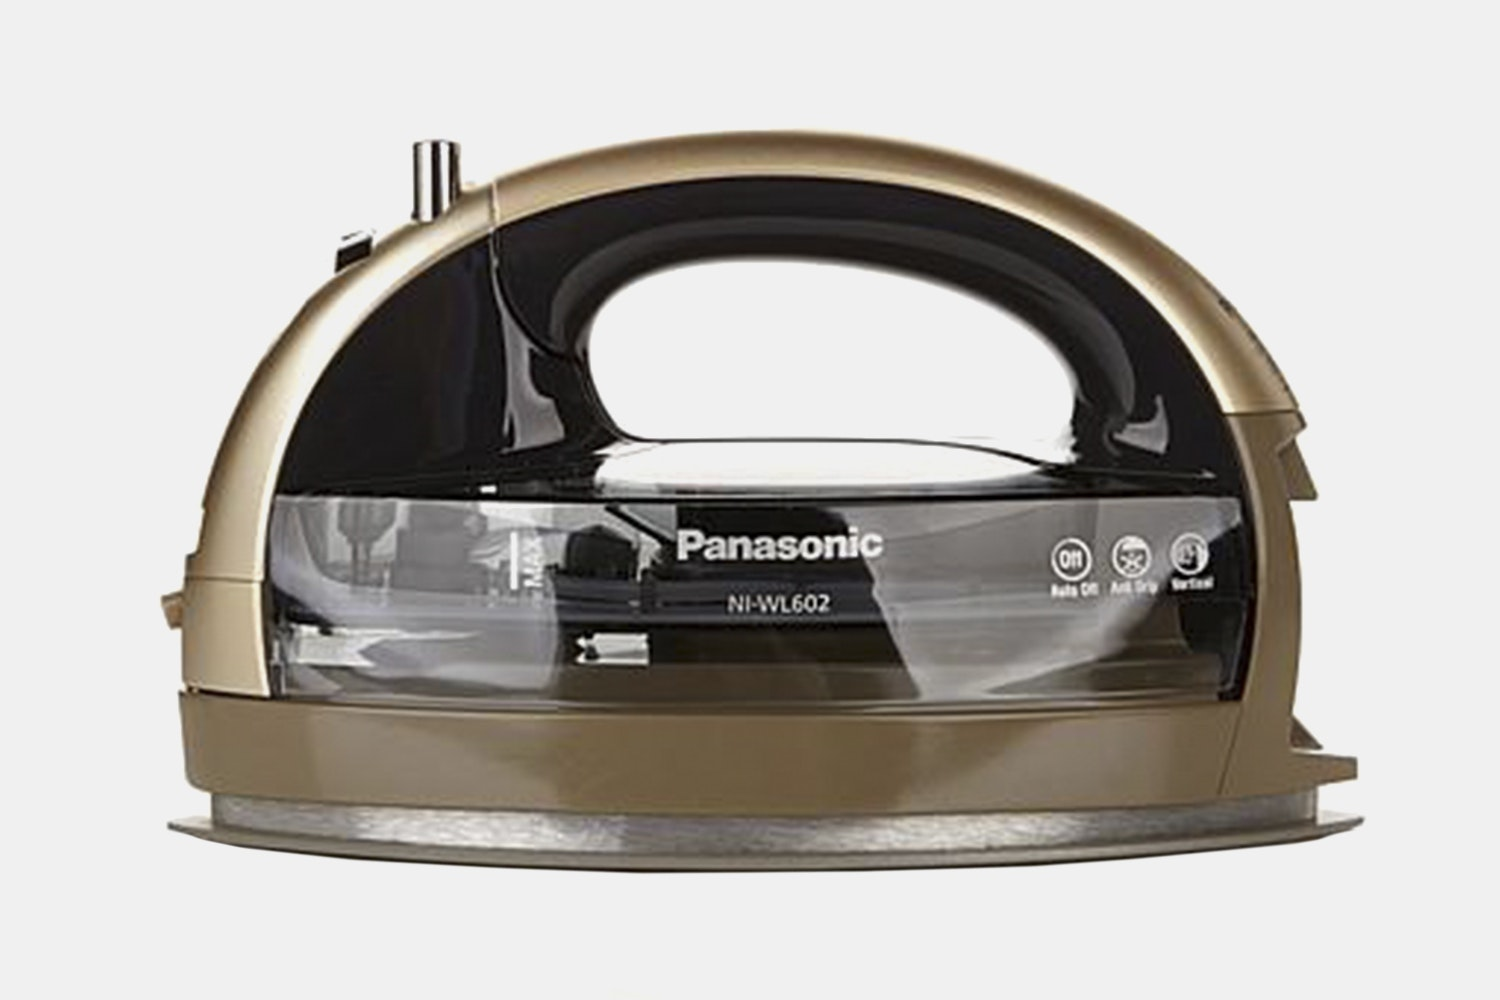 Panasonic 360 Ceramic Plate Cordless Iron